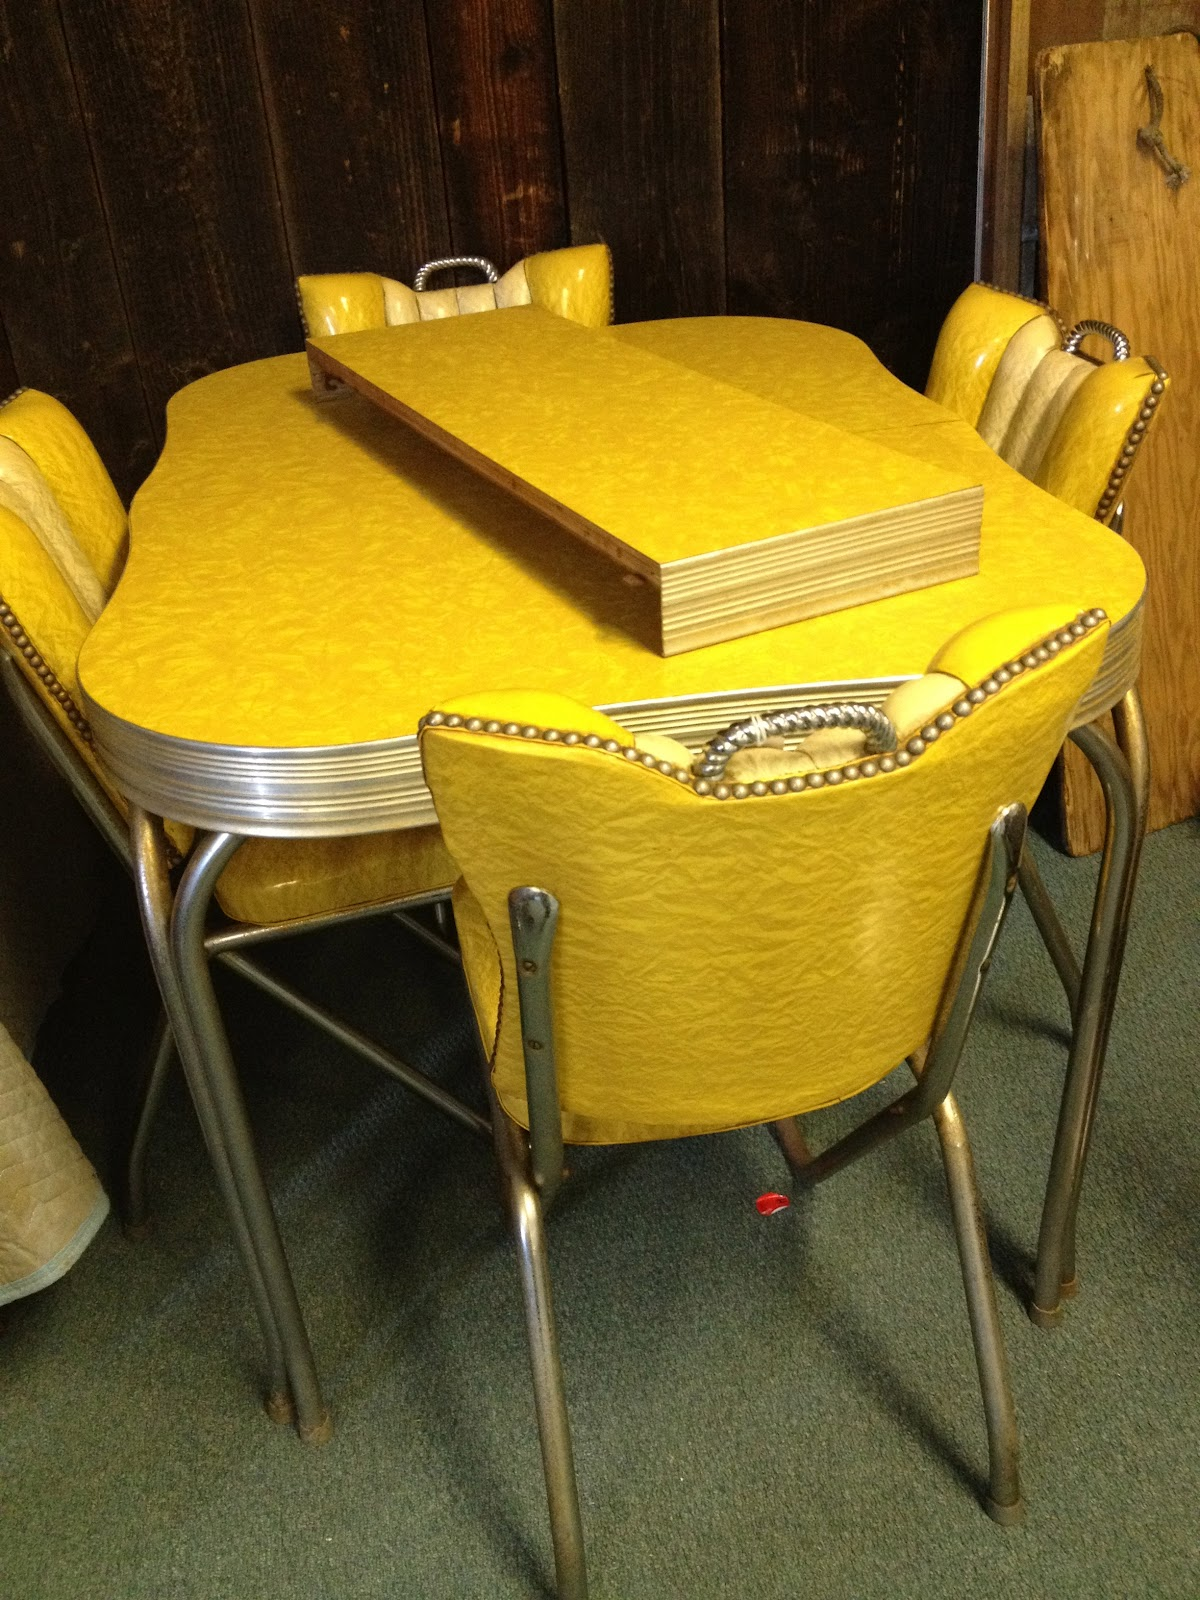 vintage kitchen table and chairs set photo - 3